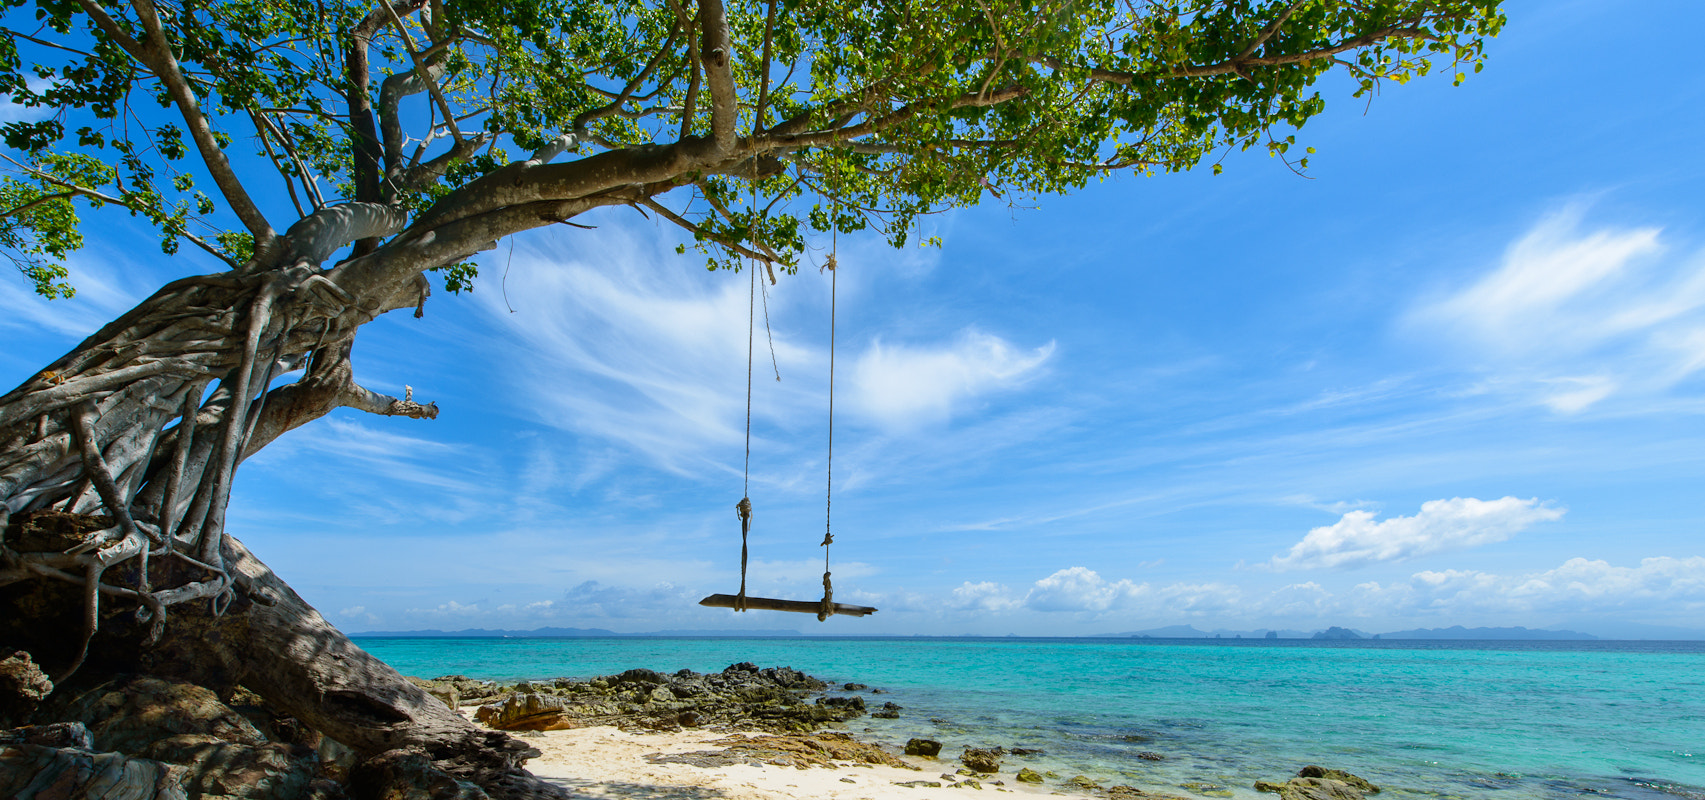 Photograph Swinging in Paradise by Matthew Scott Cooper on 500px